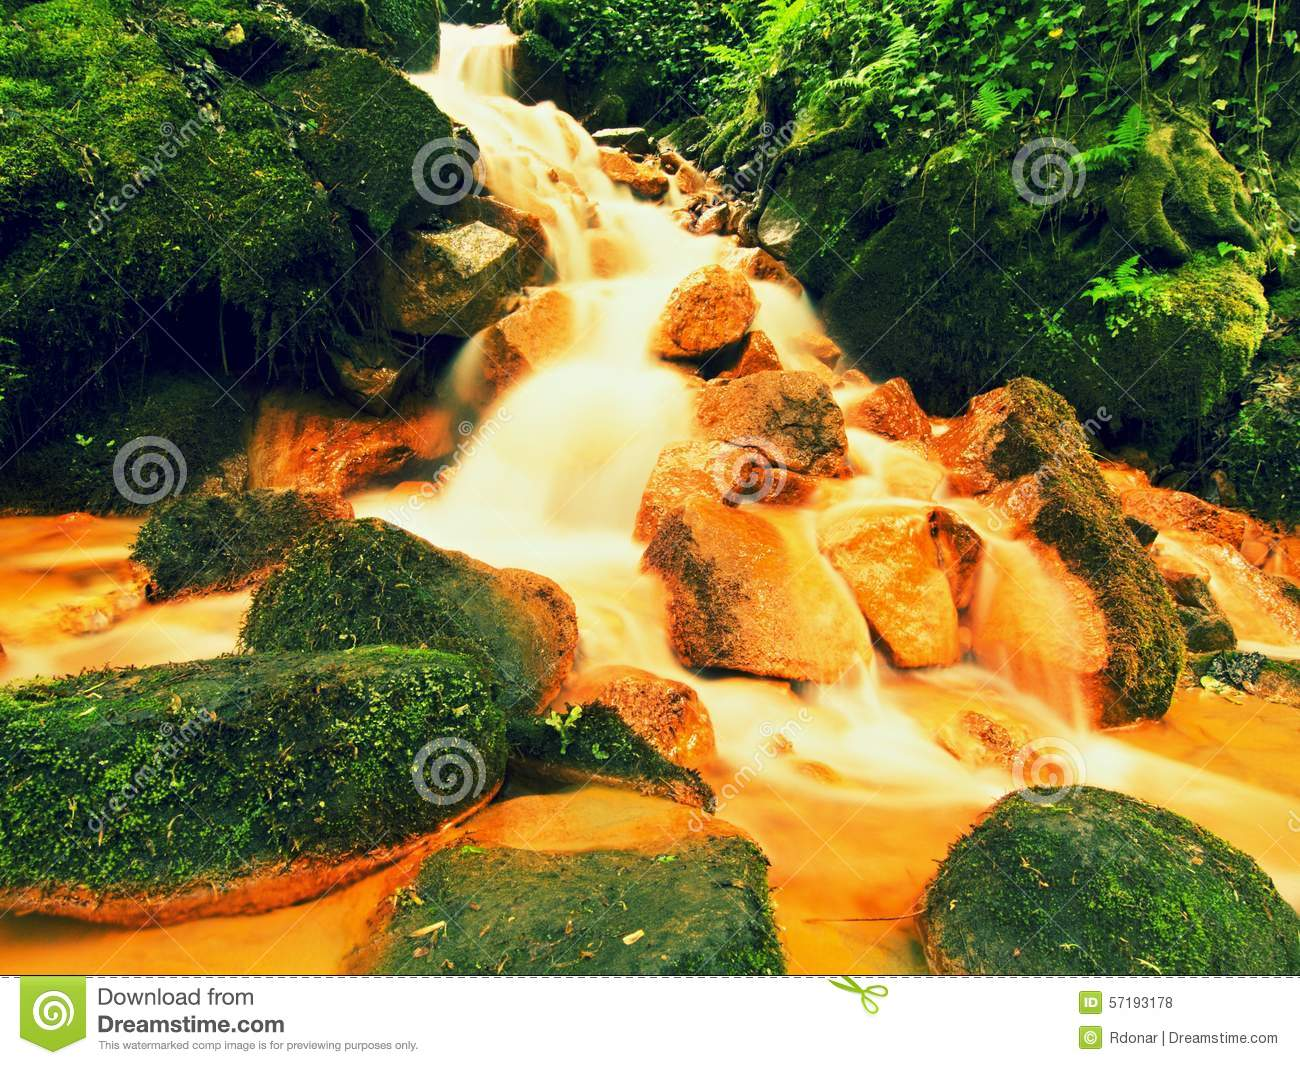 Cascades in rapid stream of mineral water. Red ferric sediments on big boulders between green ferns.